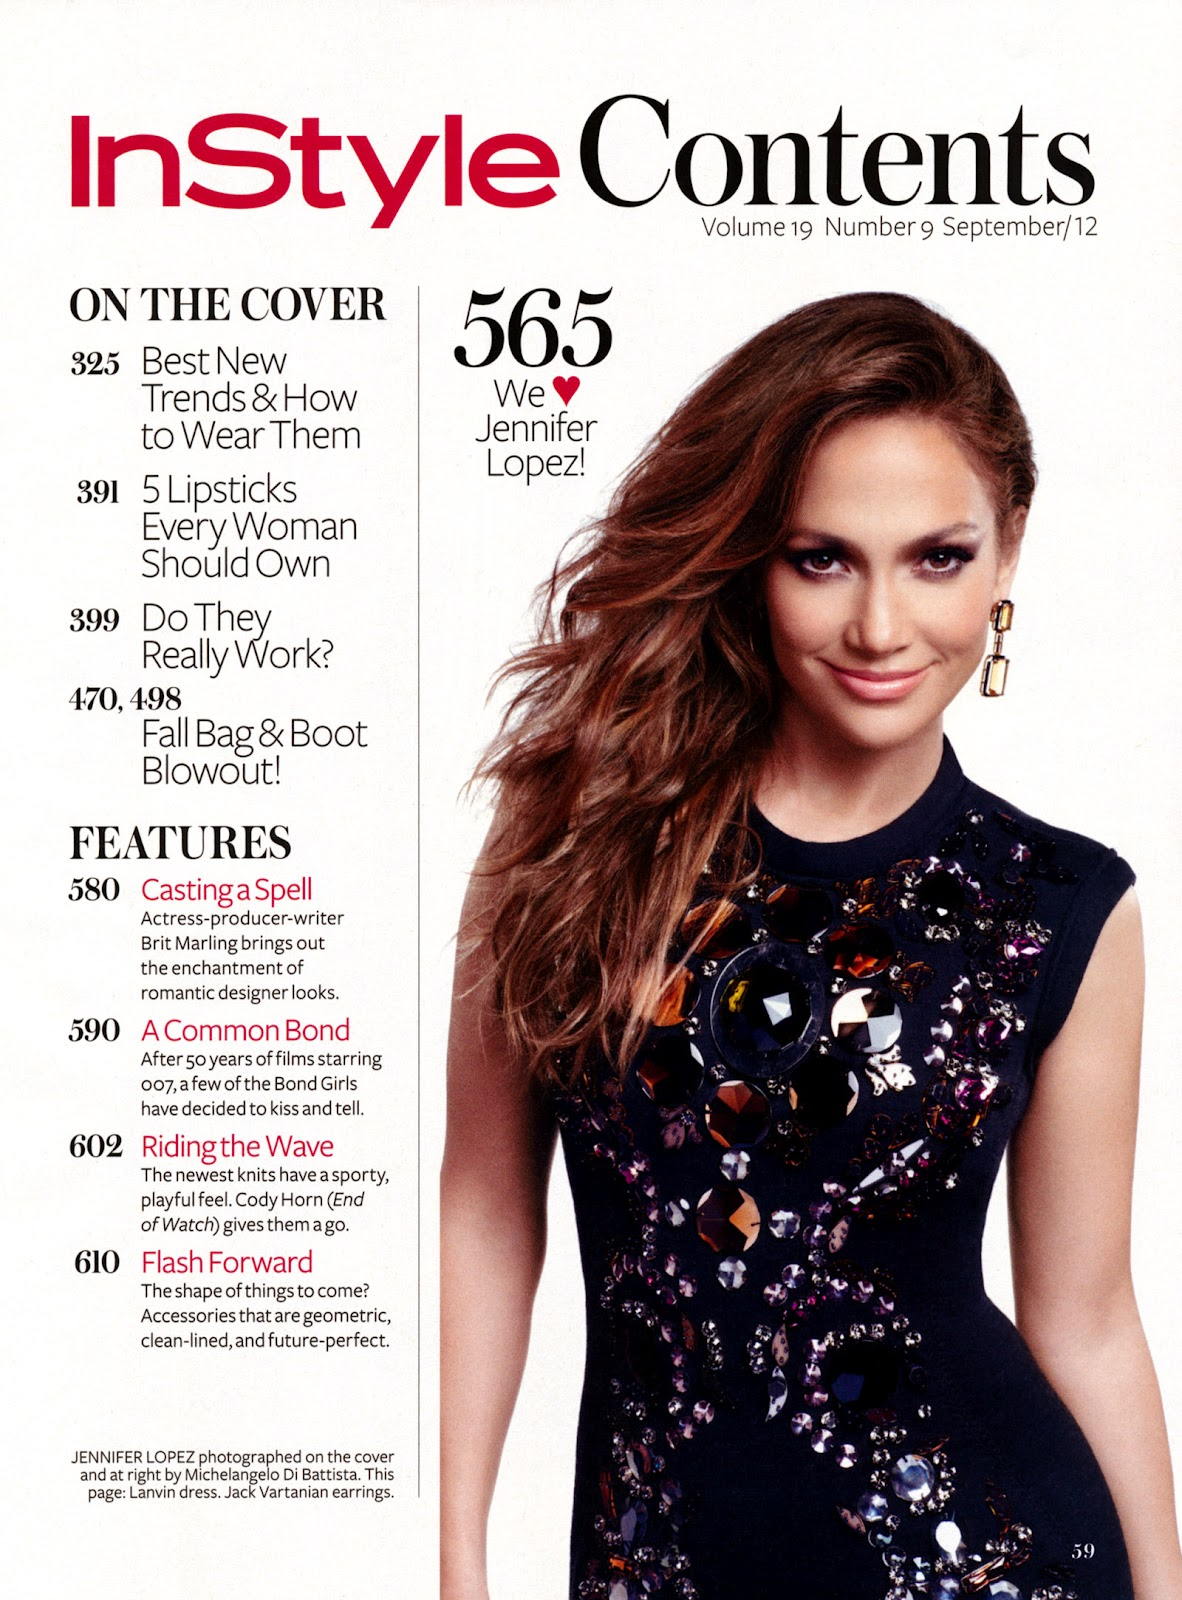 http://1.bp.blogspot.com/-IE5eS6Bn7U0/UDoRuKP_uxI/AAAAAAAANbA/MYJBDkAq6FA/s1600/Jennifer+Lopez+covers+Instyle+Magazine+September+2012+issue-02.jpg